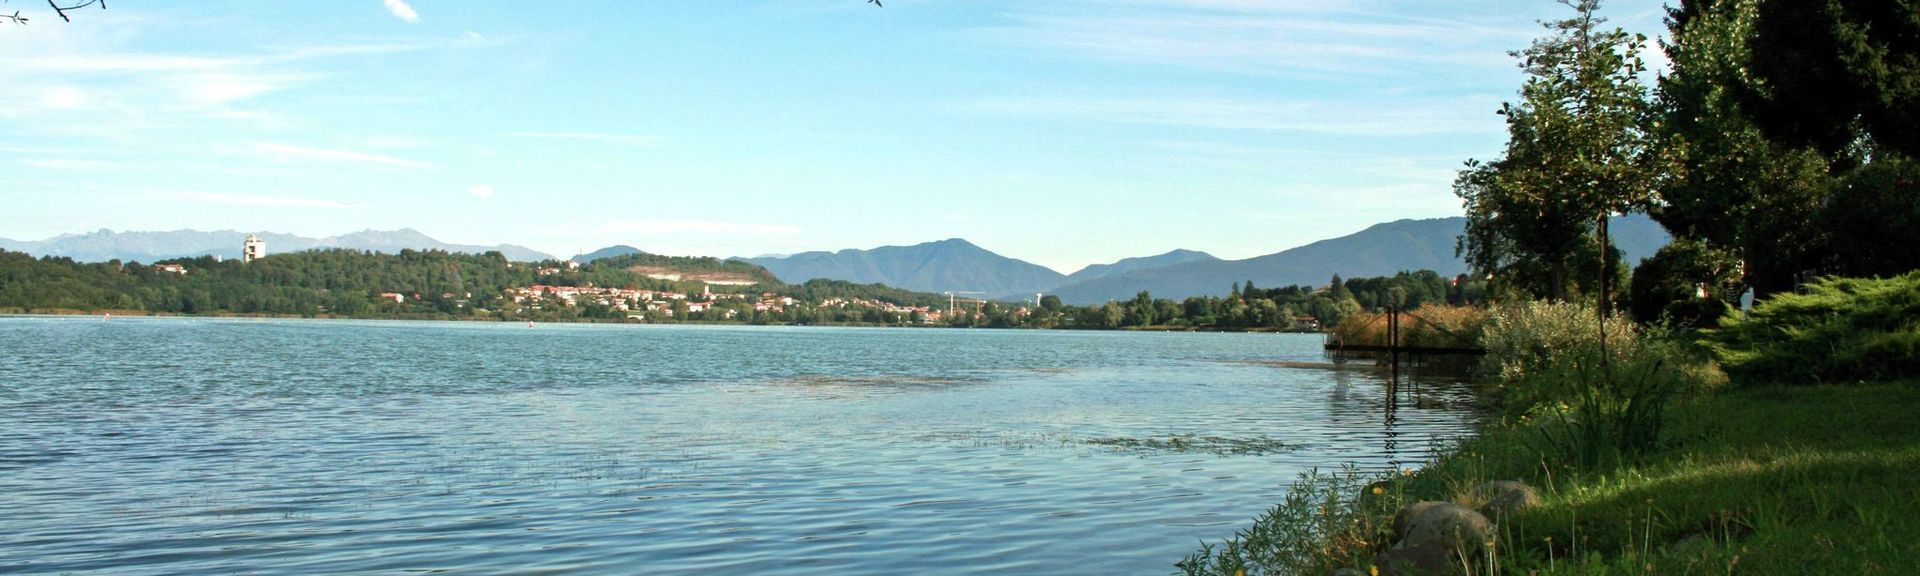 Malnate, Varese, Lombardy, Italy